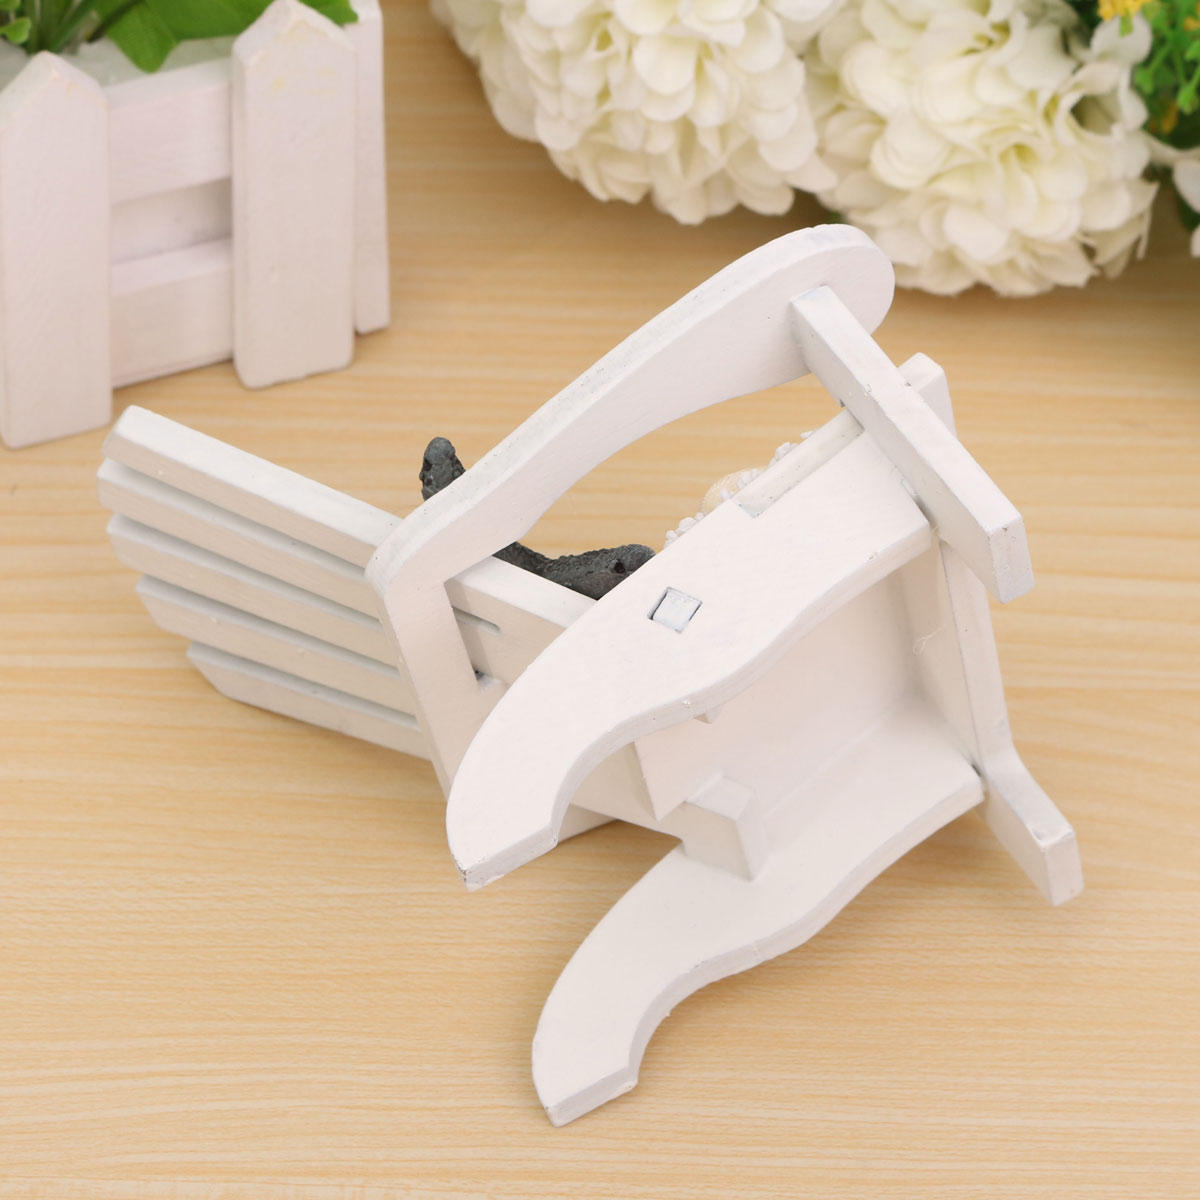 Mediterranean Style Wooden Mini Chairs Desktop Ornaments Home Garden Decoration Furnishings - 10